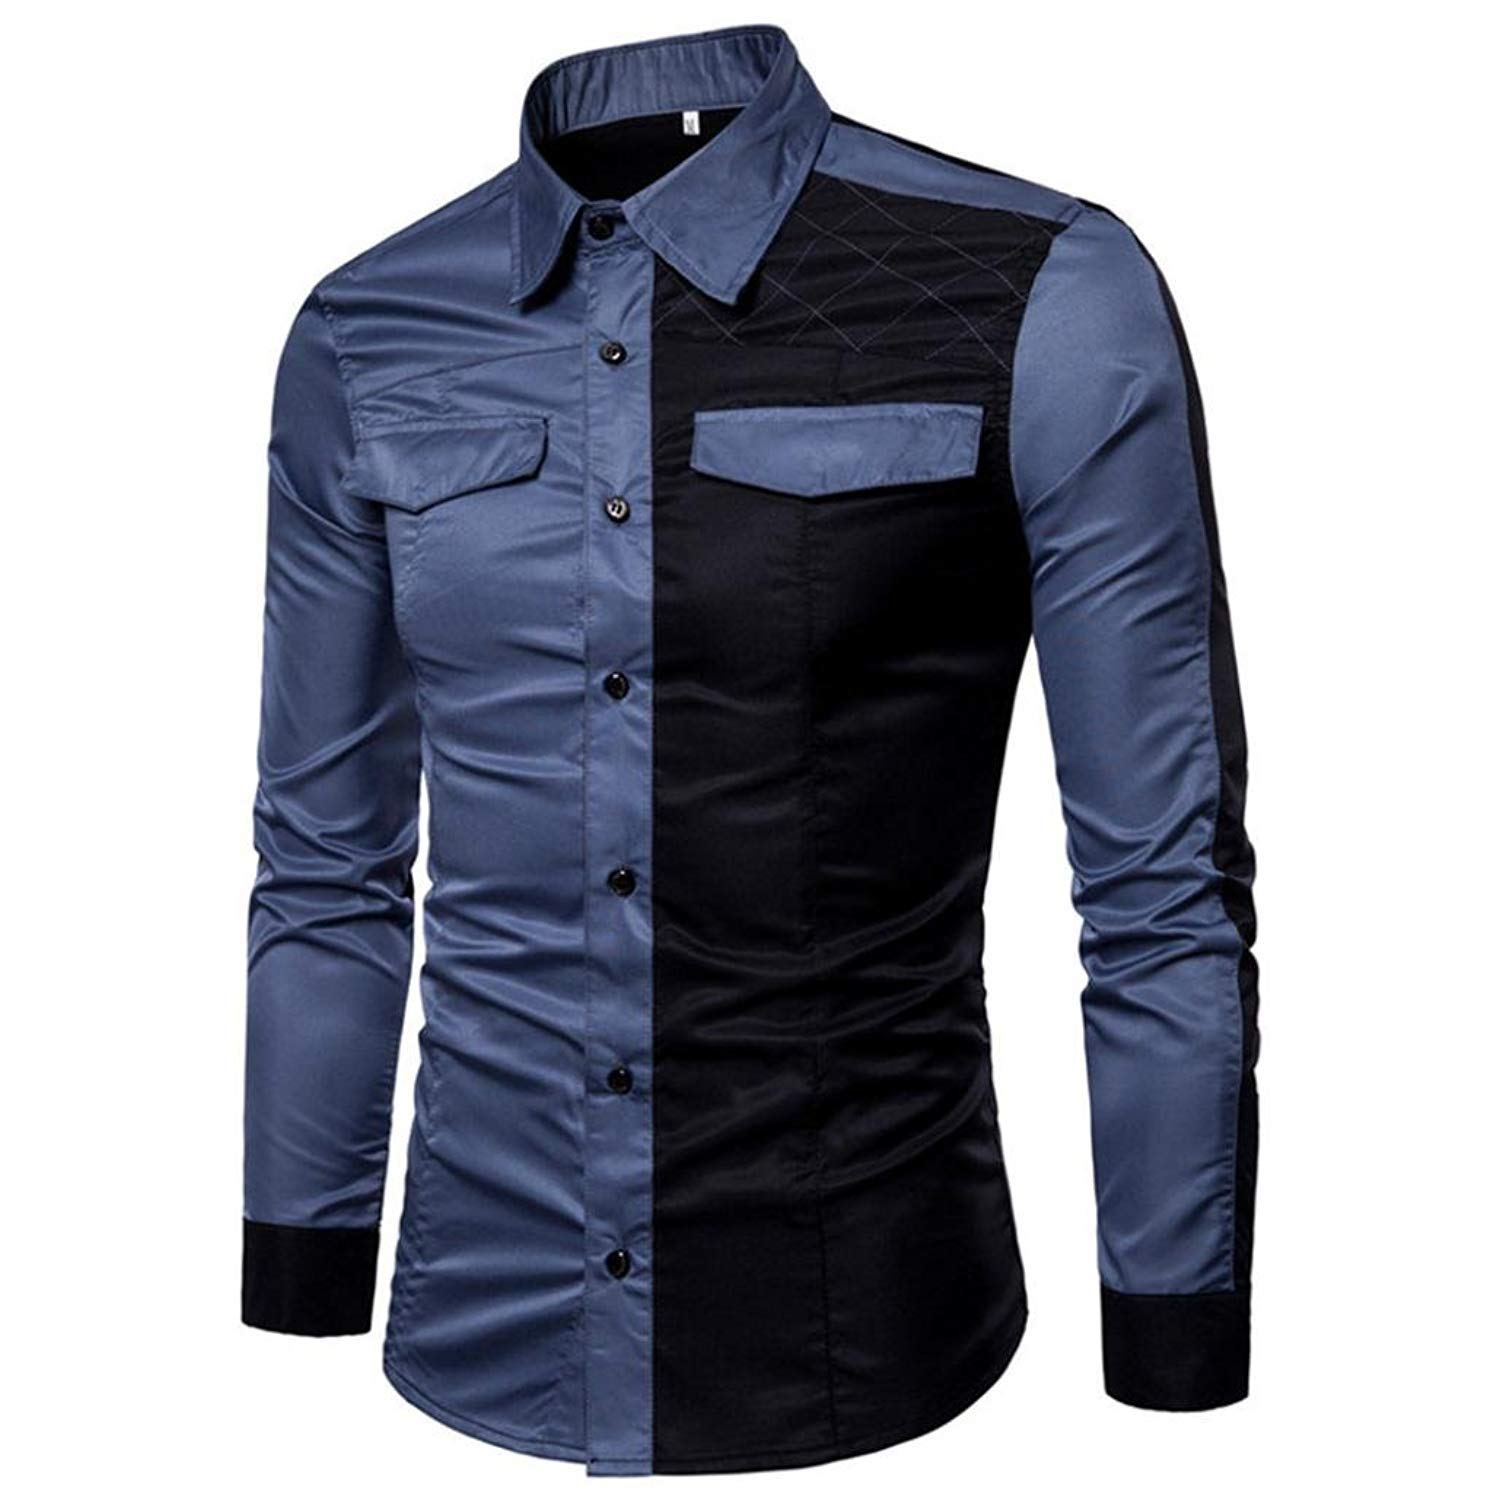 Easytoy Men's Patchwork Long Sleeve Button Down Oxford Dress Shirts Top Blouse (Blue, XL)